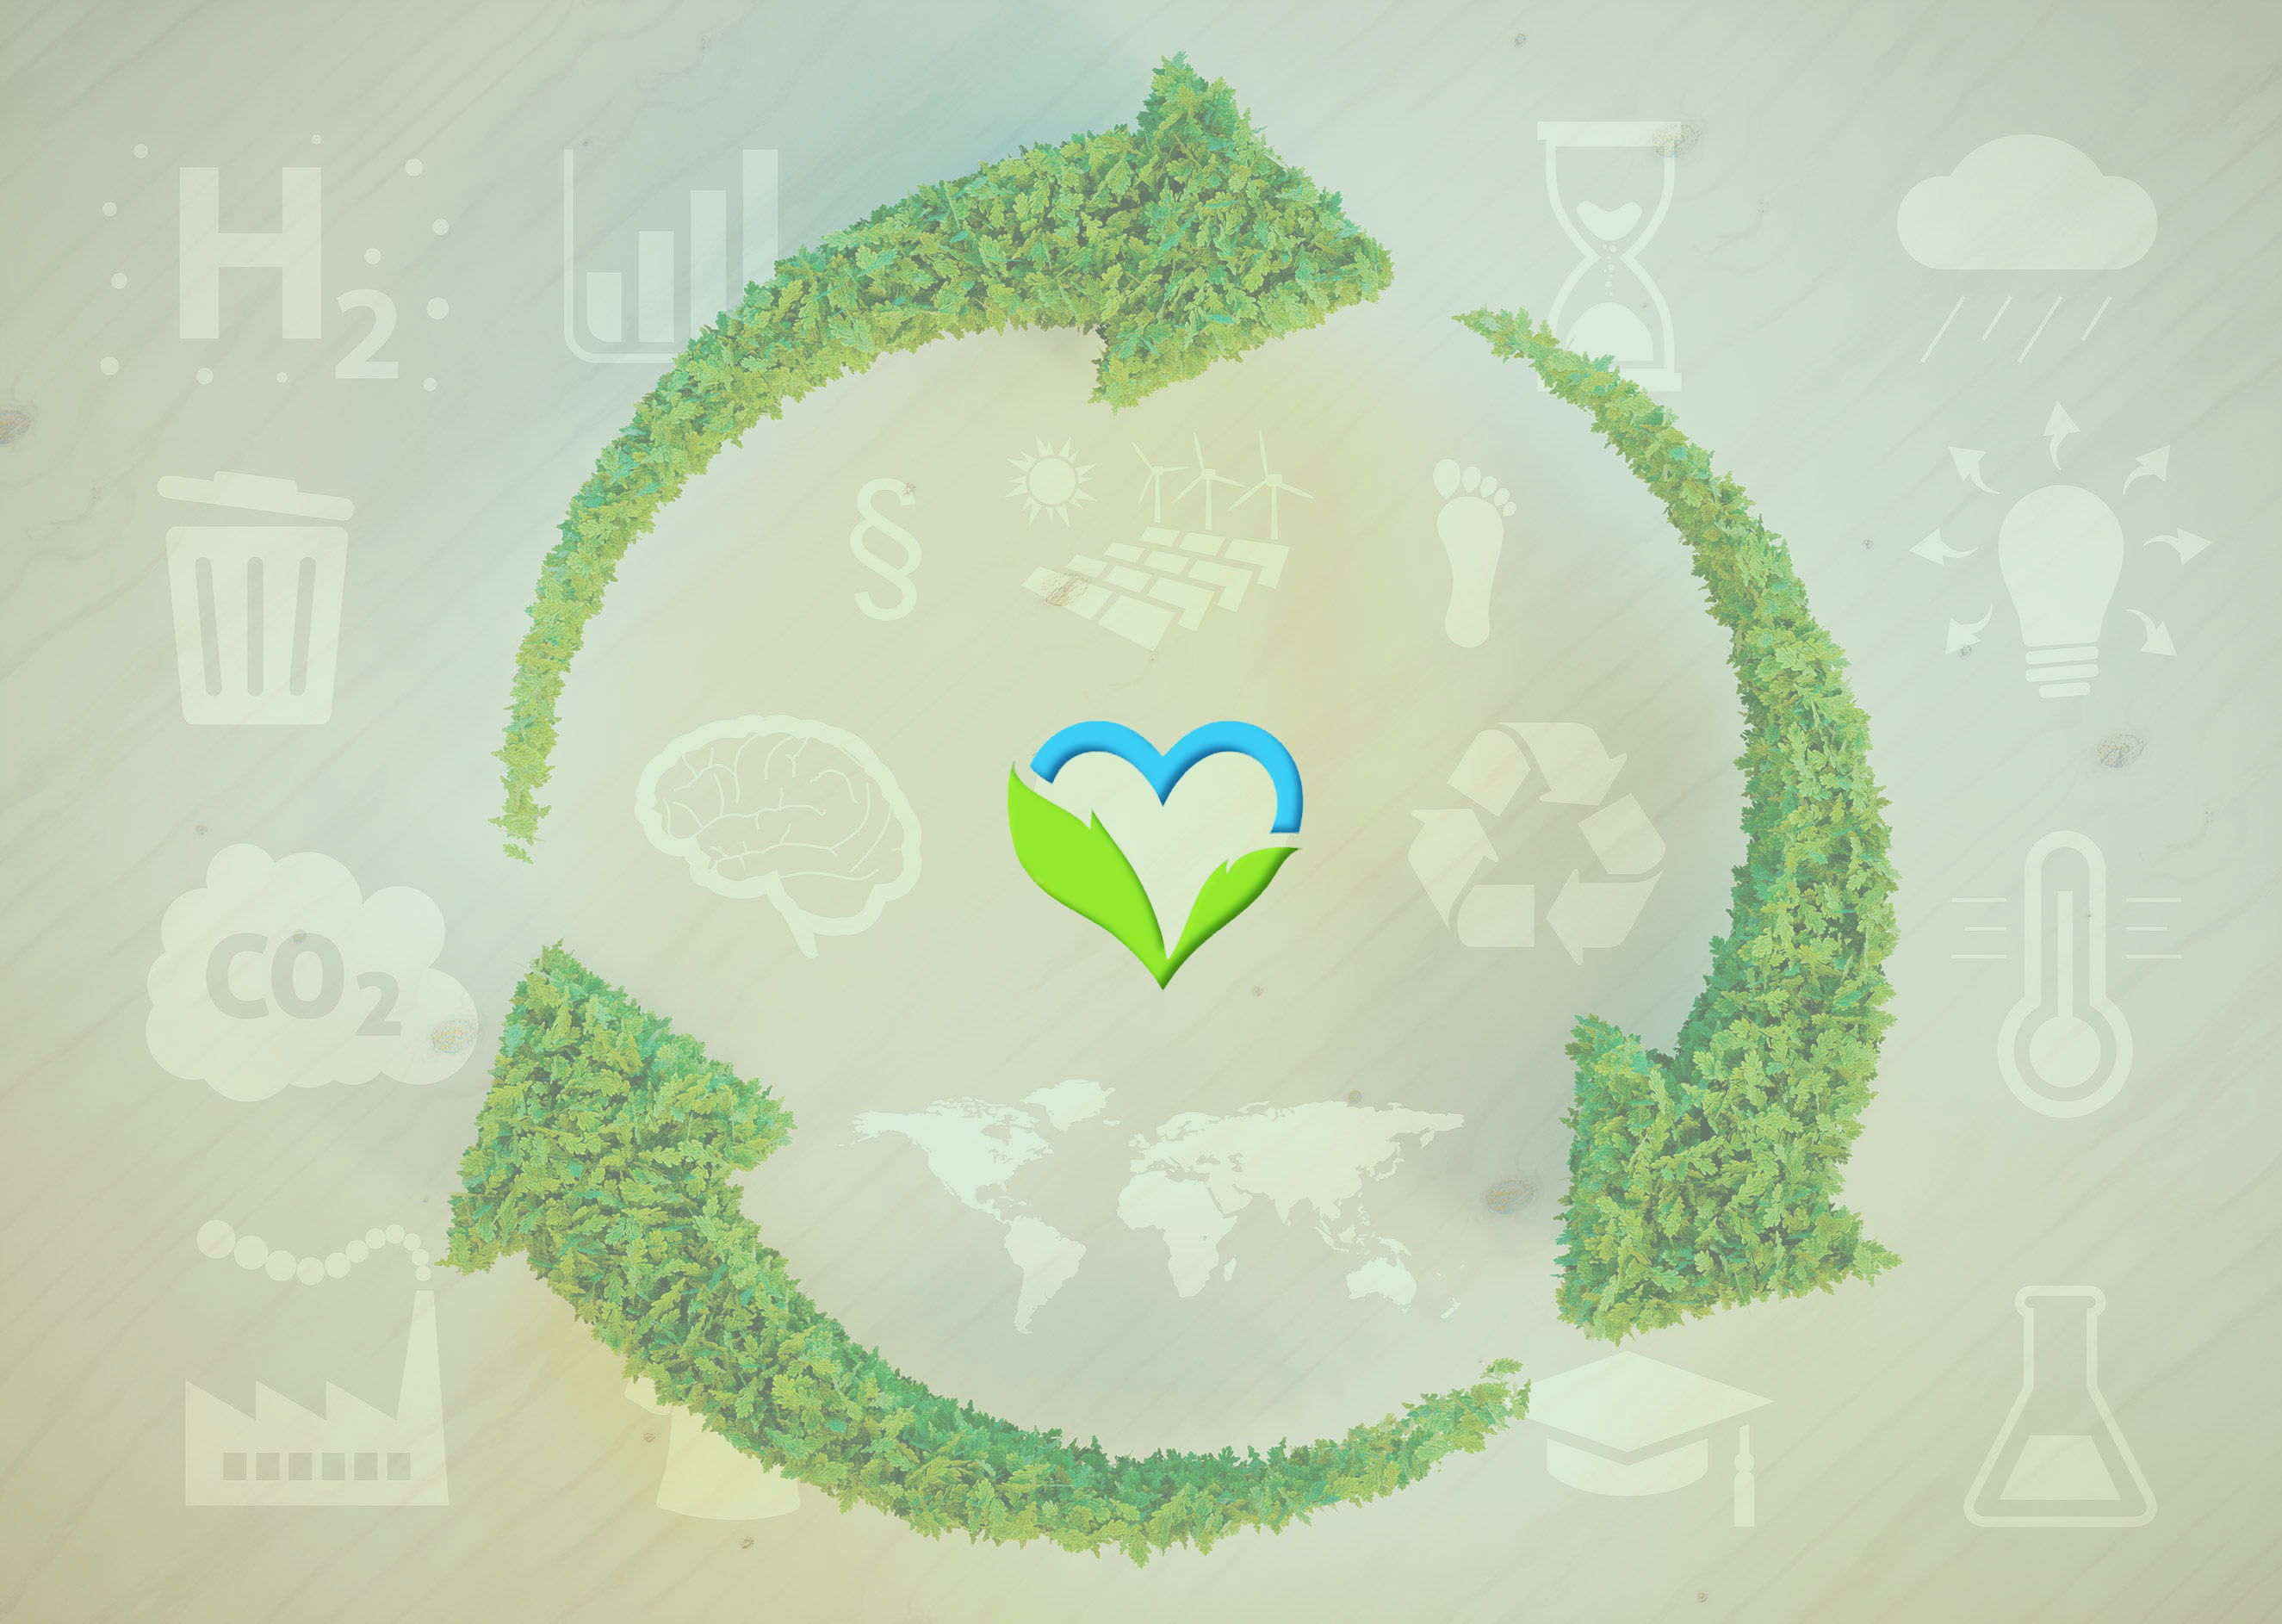 <strong>BHI IN SUSTAINABILITY</strong>